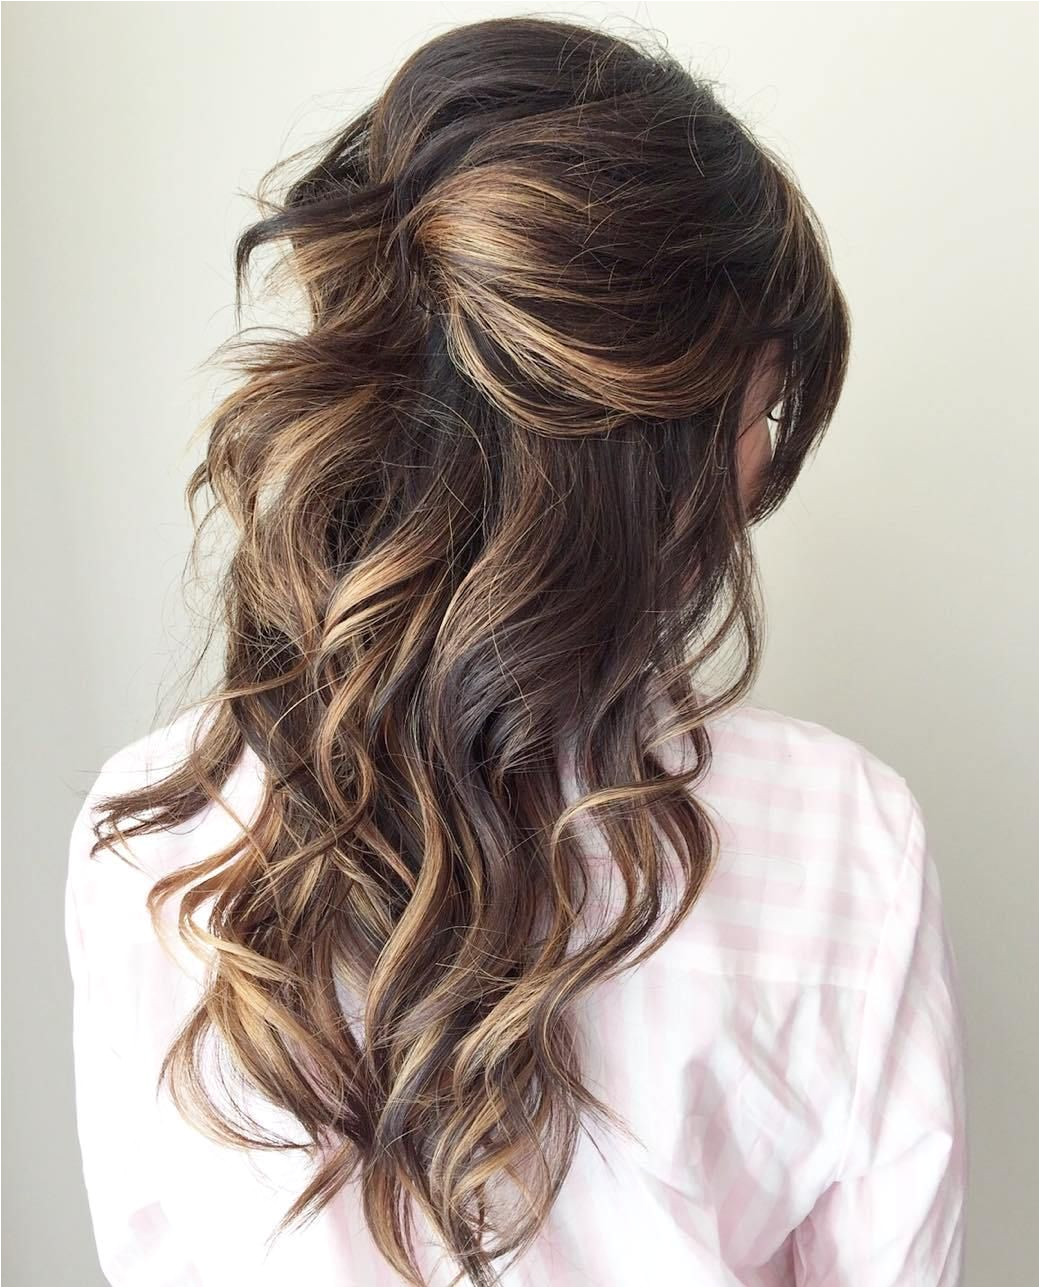 Updo Hairstyles with Hair Down Half Up Half Down Wedding Hairstyles – 50 Stylish Ideas for Brides